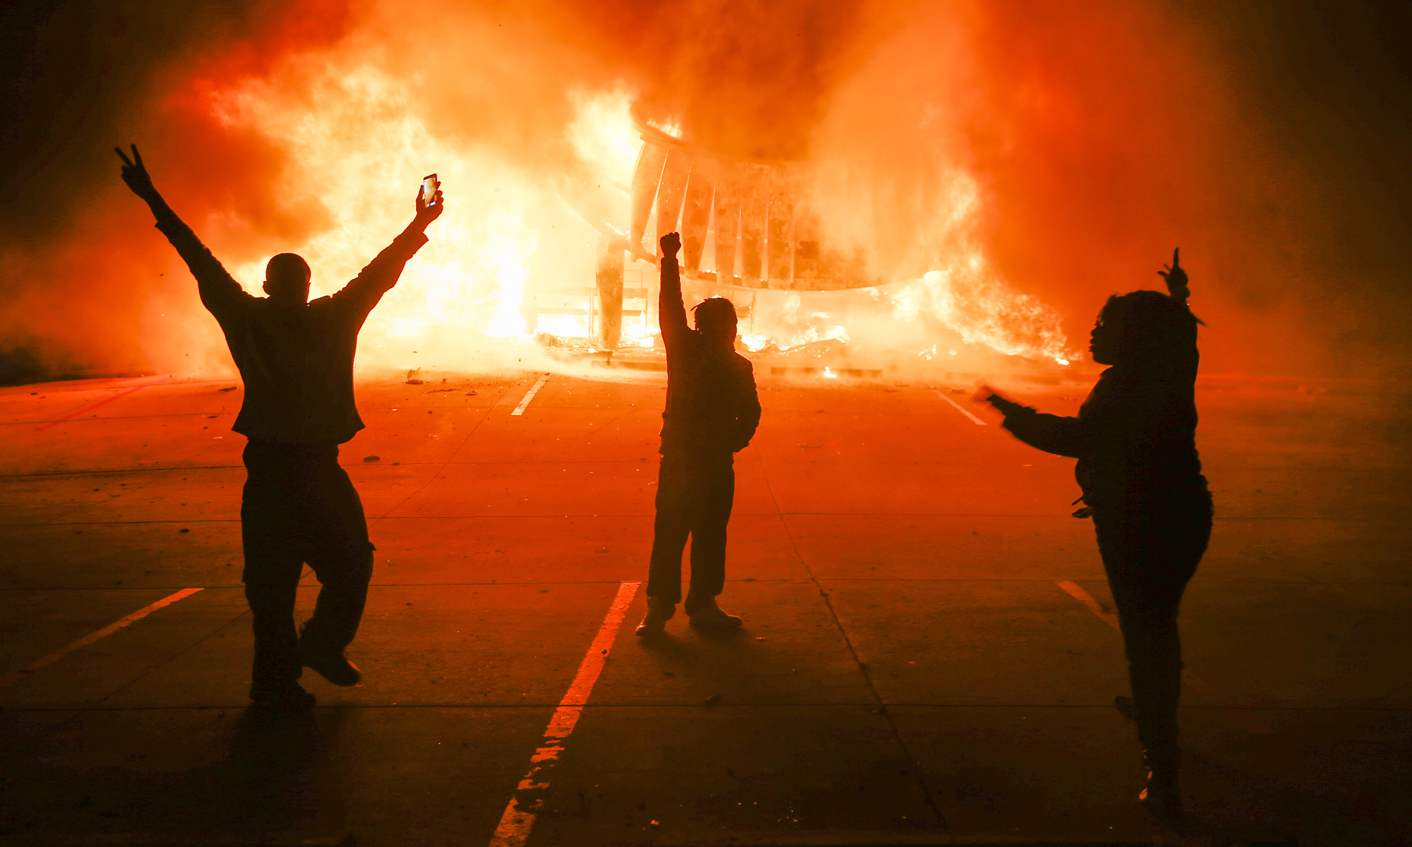 Ferguson burns, South Africa simmers: Why America is but a ...